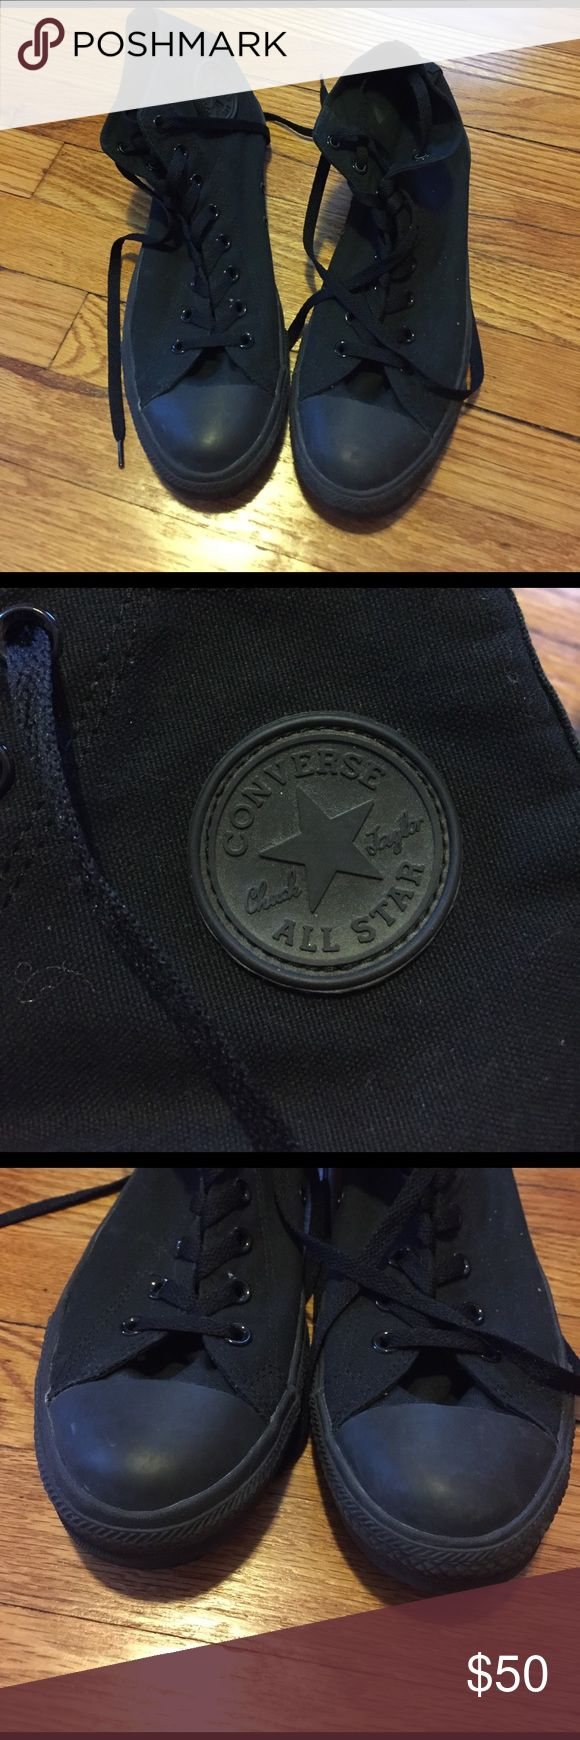 Men's Converse Chuck Taylor High Tops EUC Men's Black Converse High Top Chuck Taylor. Size 11. Only worn once or twice and no real wear except for slight scuffing in rubber by soles. No box. No trades. Converse Shoes